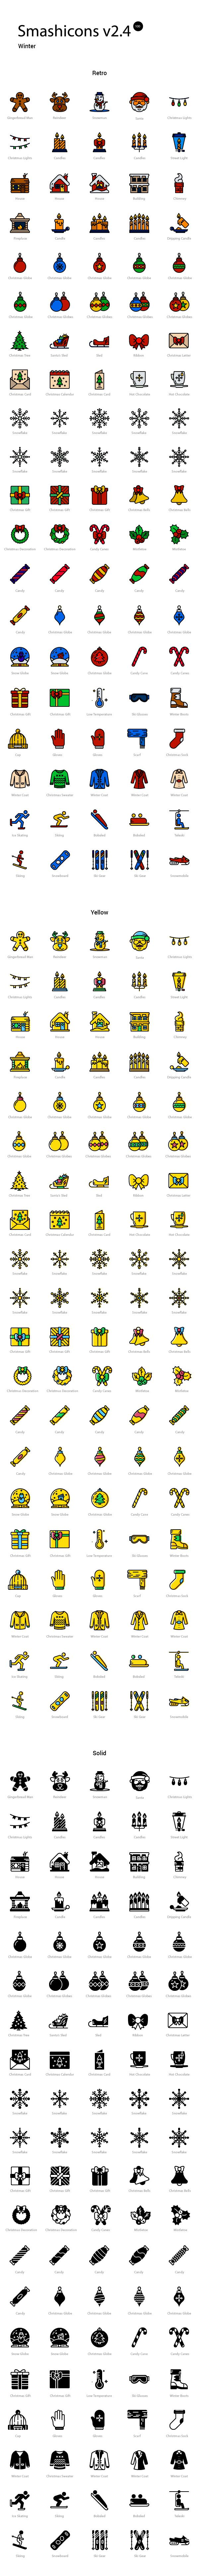 I'm glad to share with you today an original new set of 100 Winter themed icons available in 3 styles - retro, yellow and...